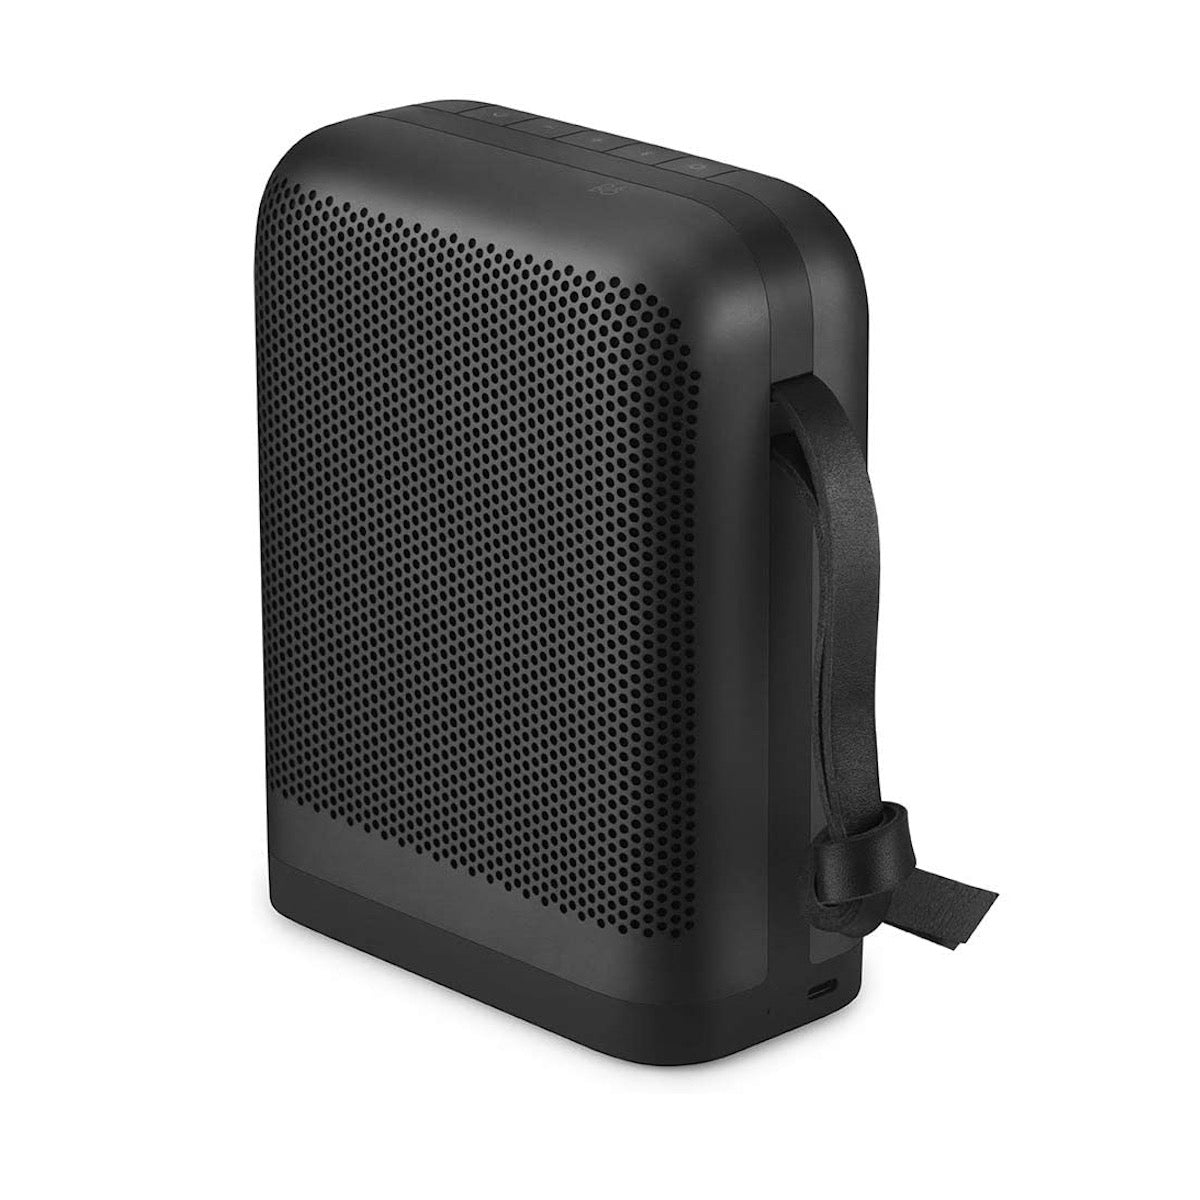 Bang & Olufsen Beoplay P6 - Portable Bluetooth Speaker - AVStore.in